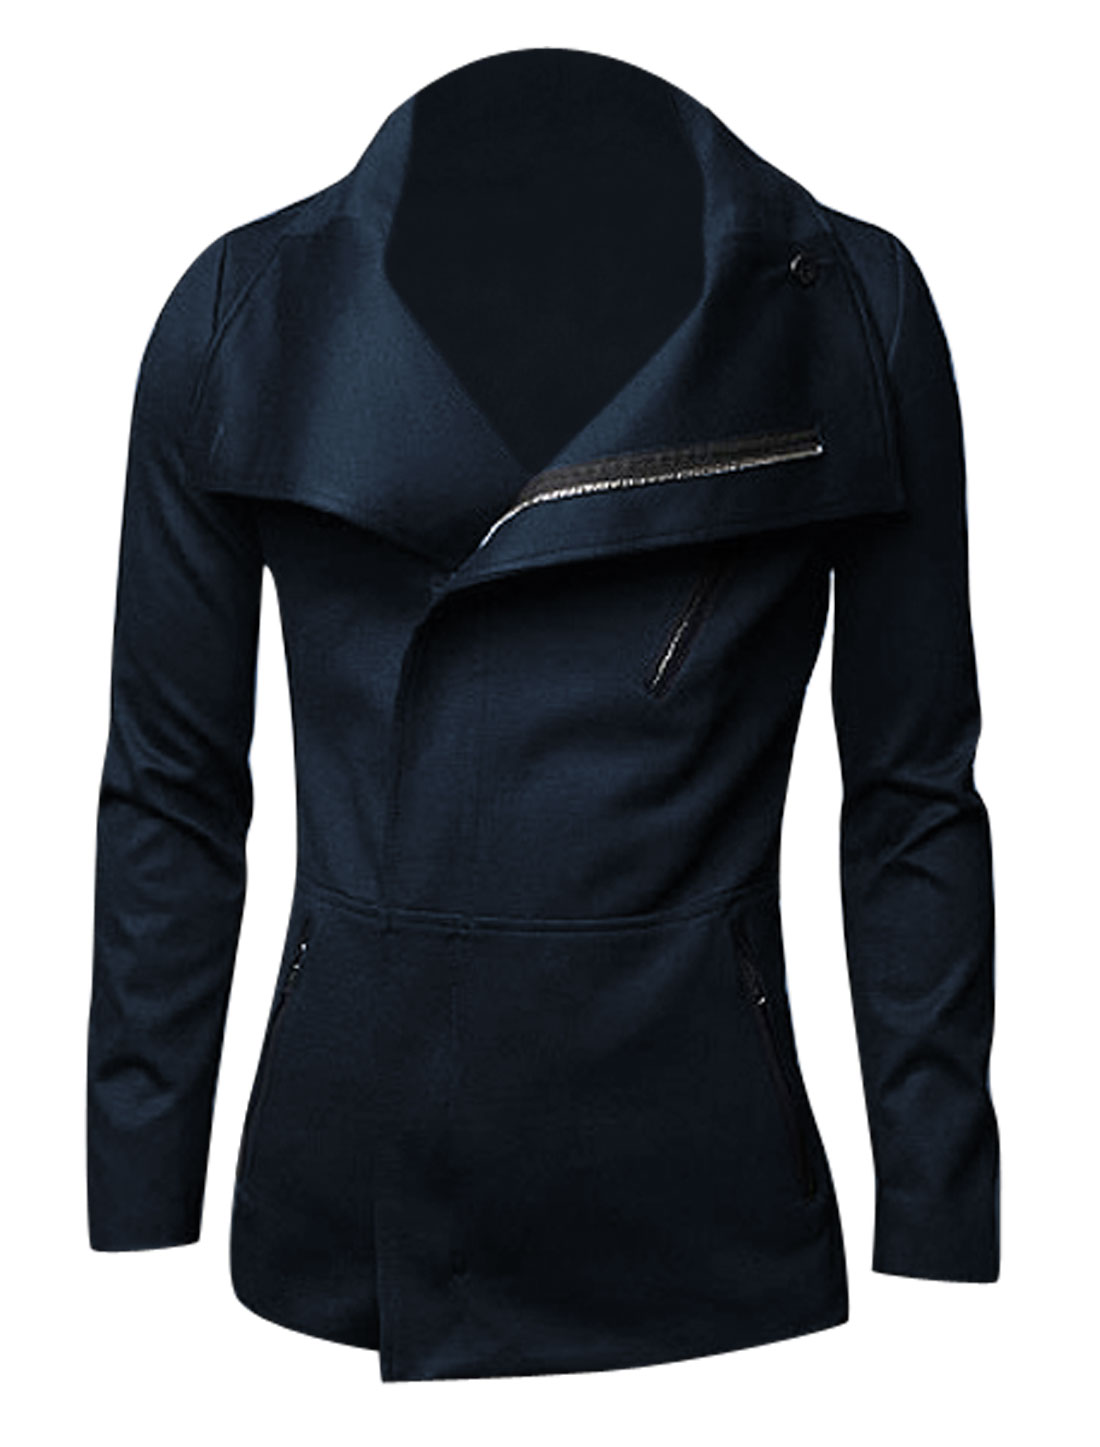 Convertible Collar Long Sleeves Trendy Jacket for Men Navy Blue M